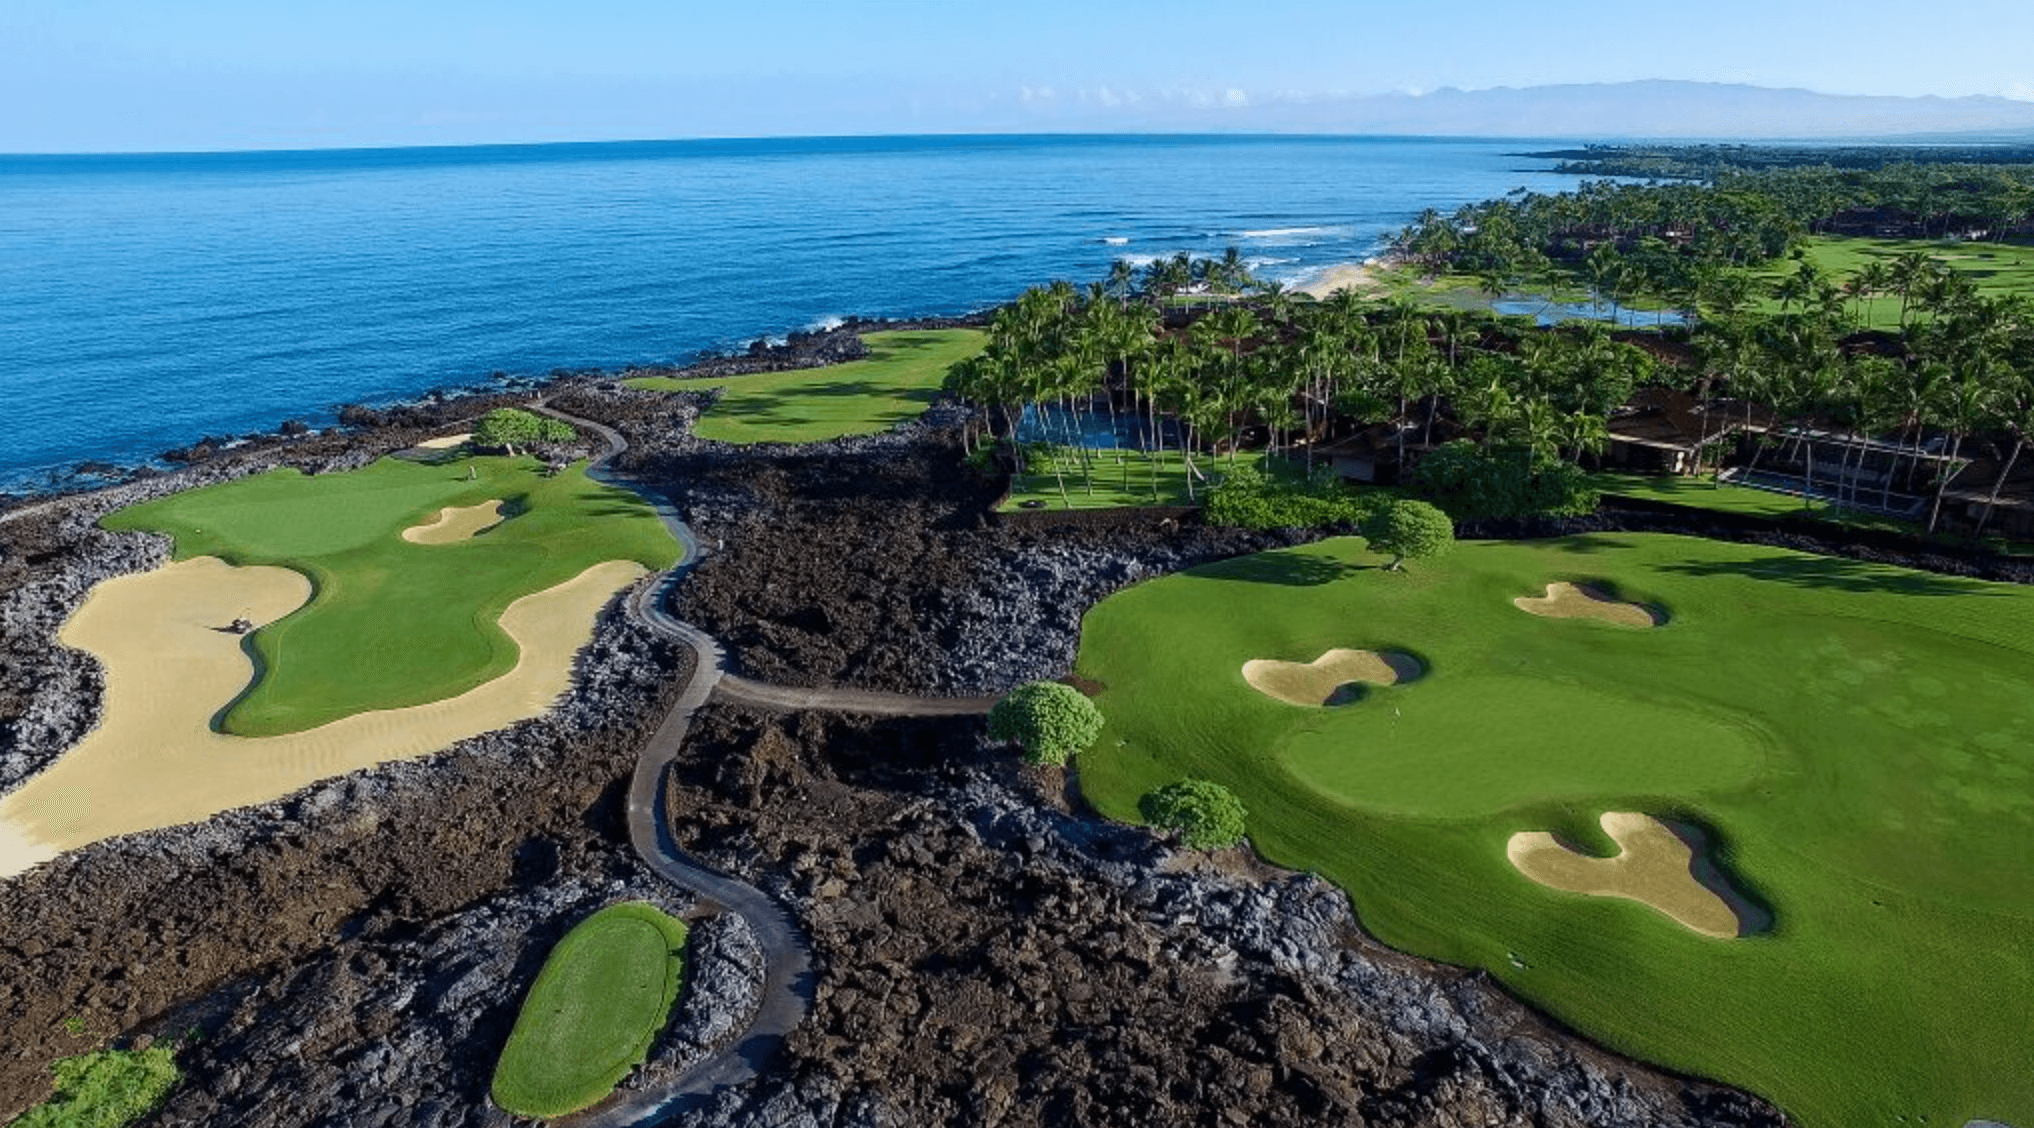 FOUR SEASONS RESORTS HAWAII, EDGE JET ile ORTAKLIK YAPIYOR yazılar